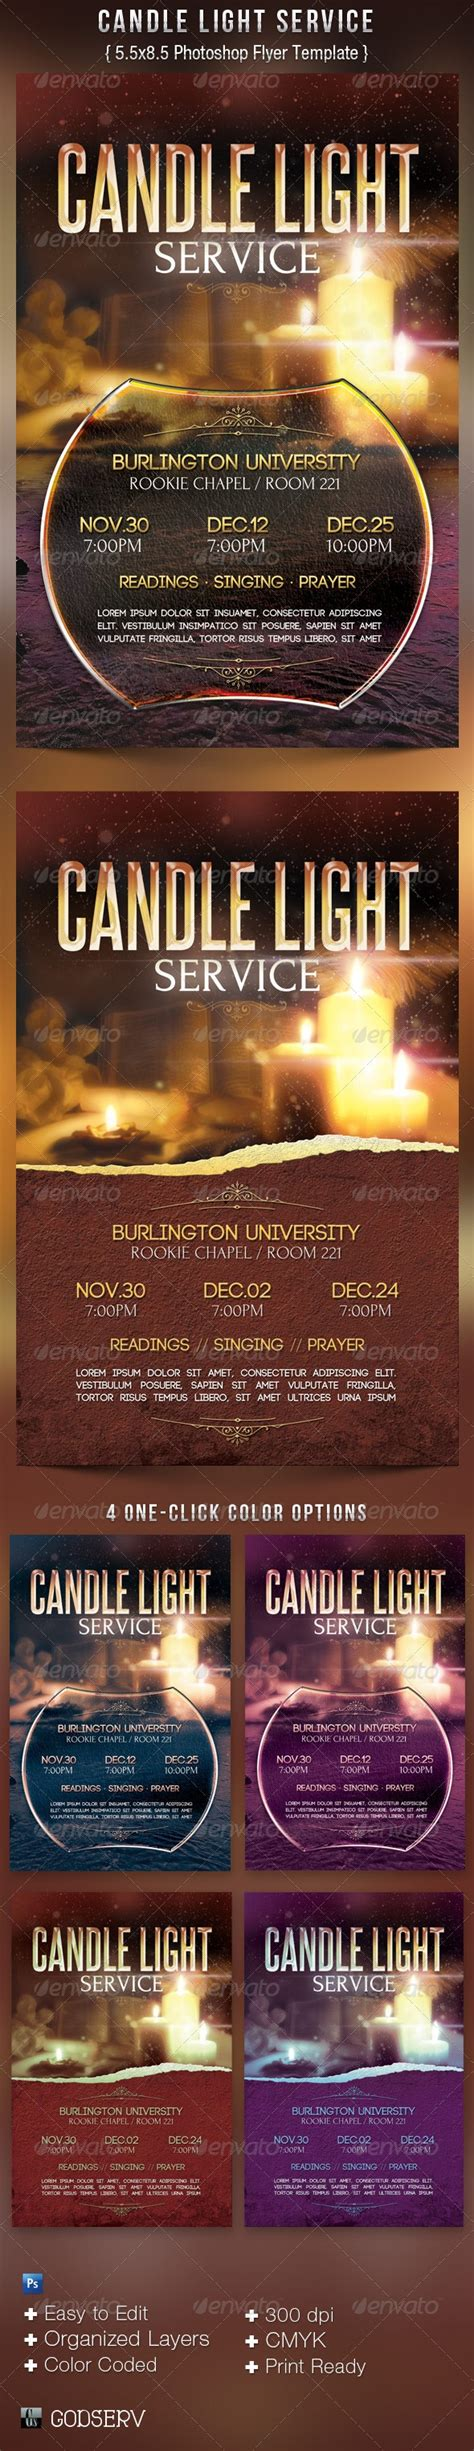 candle light service flyer templates  michael taylor